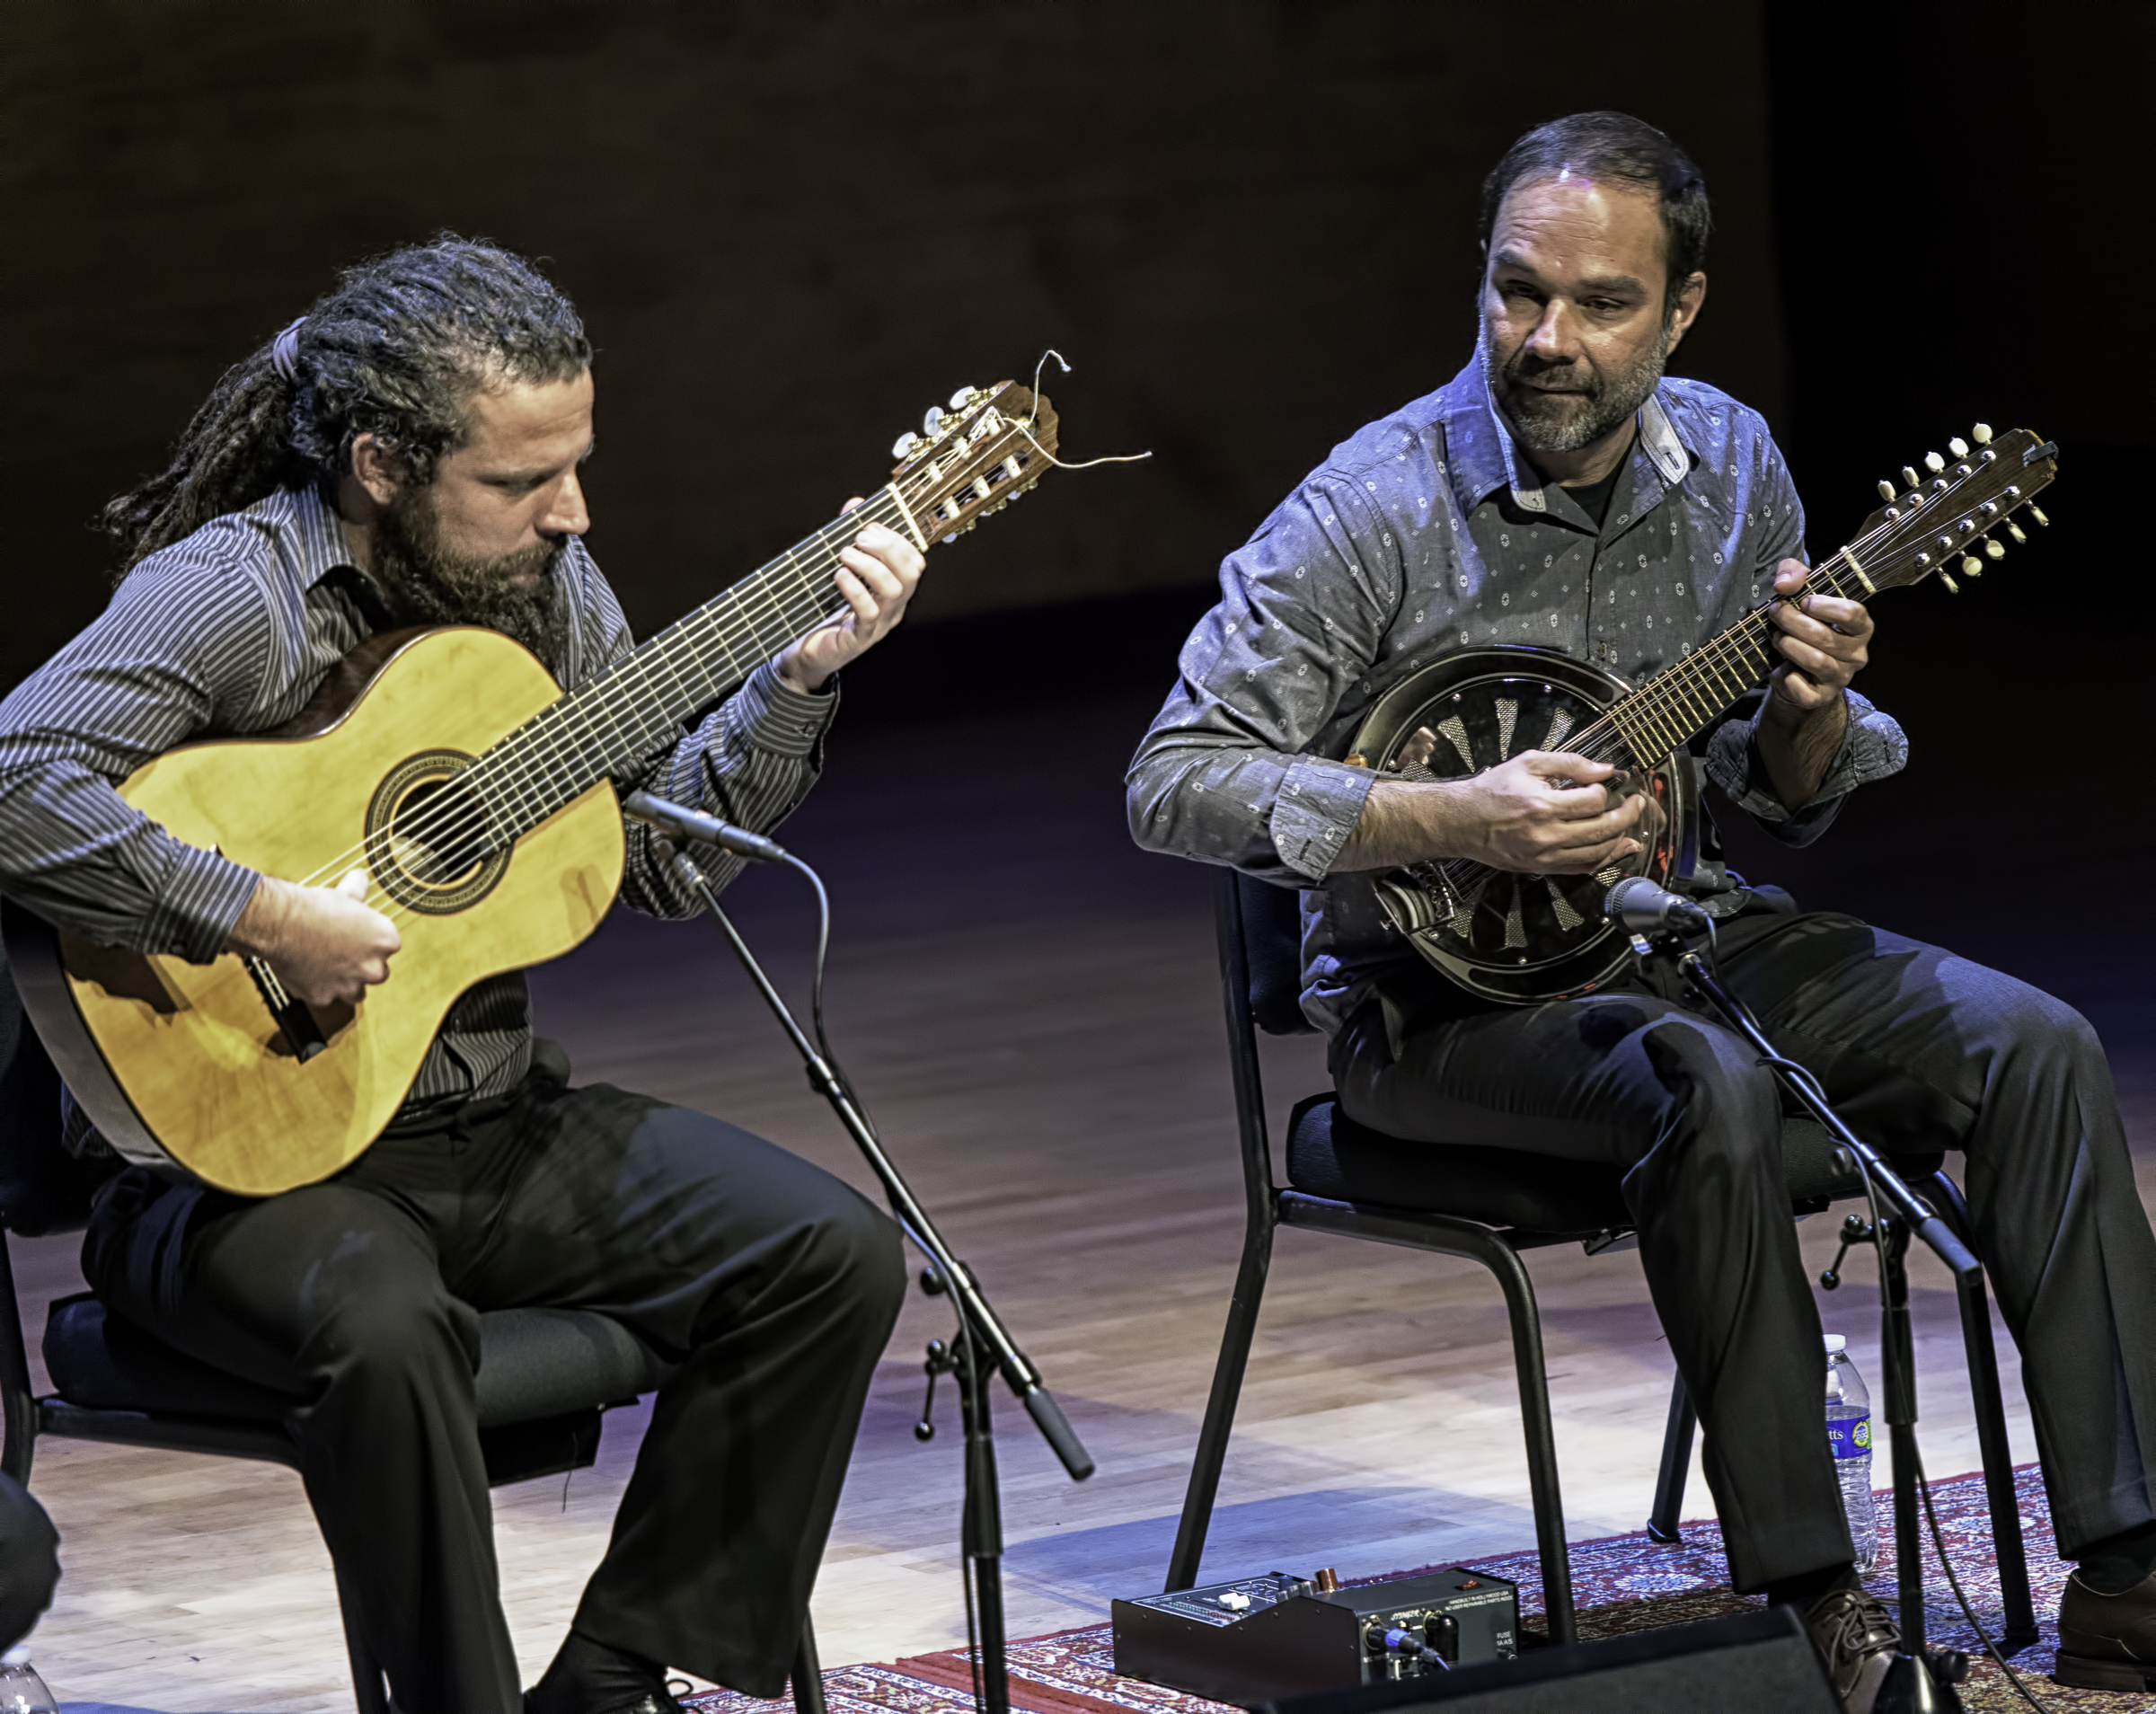 Douglas Lora And Dudu Maia With Anat Cohen And Trio Brasileiro At The Musical Instrument Museum (mim) In Phoenix